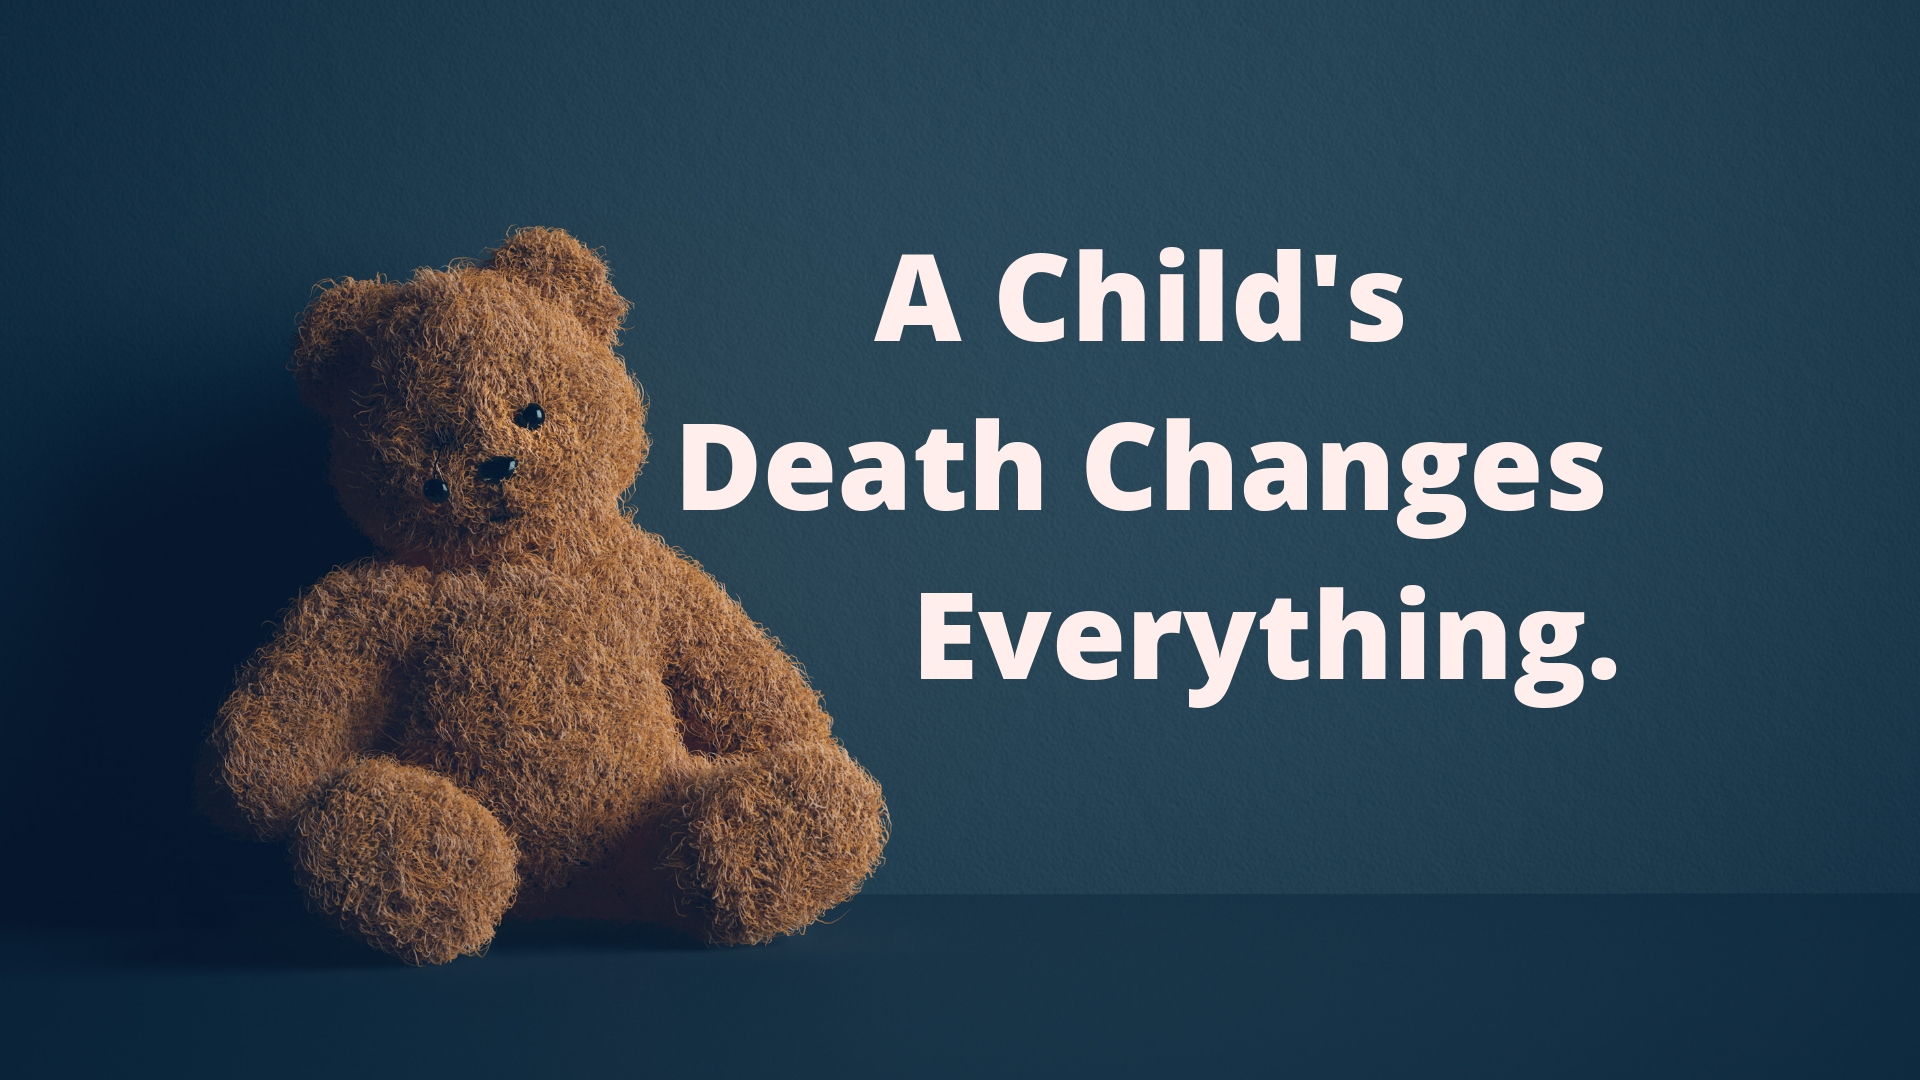 A Child's Death Changes Everything - Stock Adobe - Canva